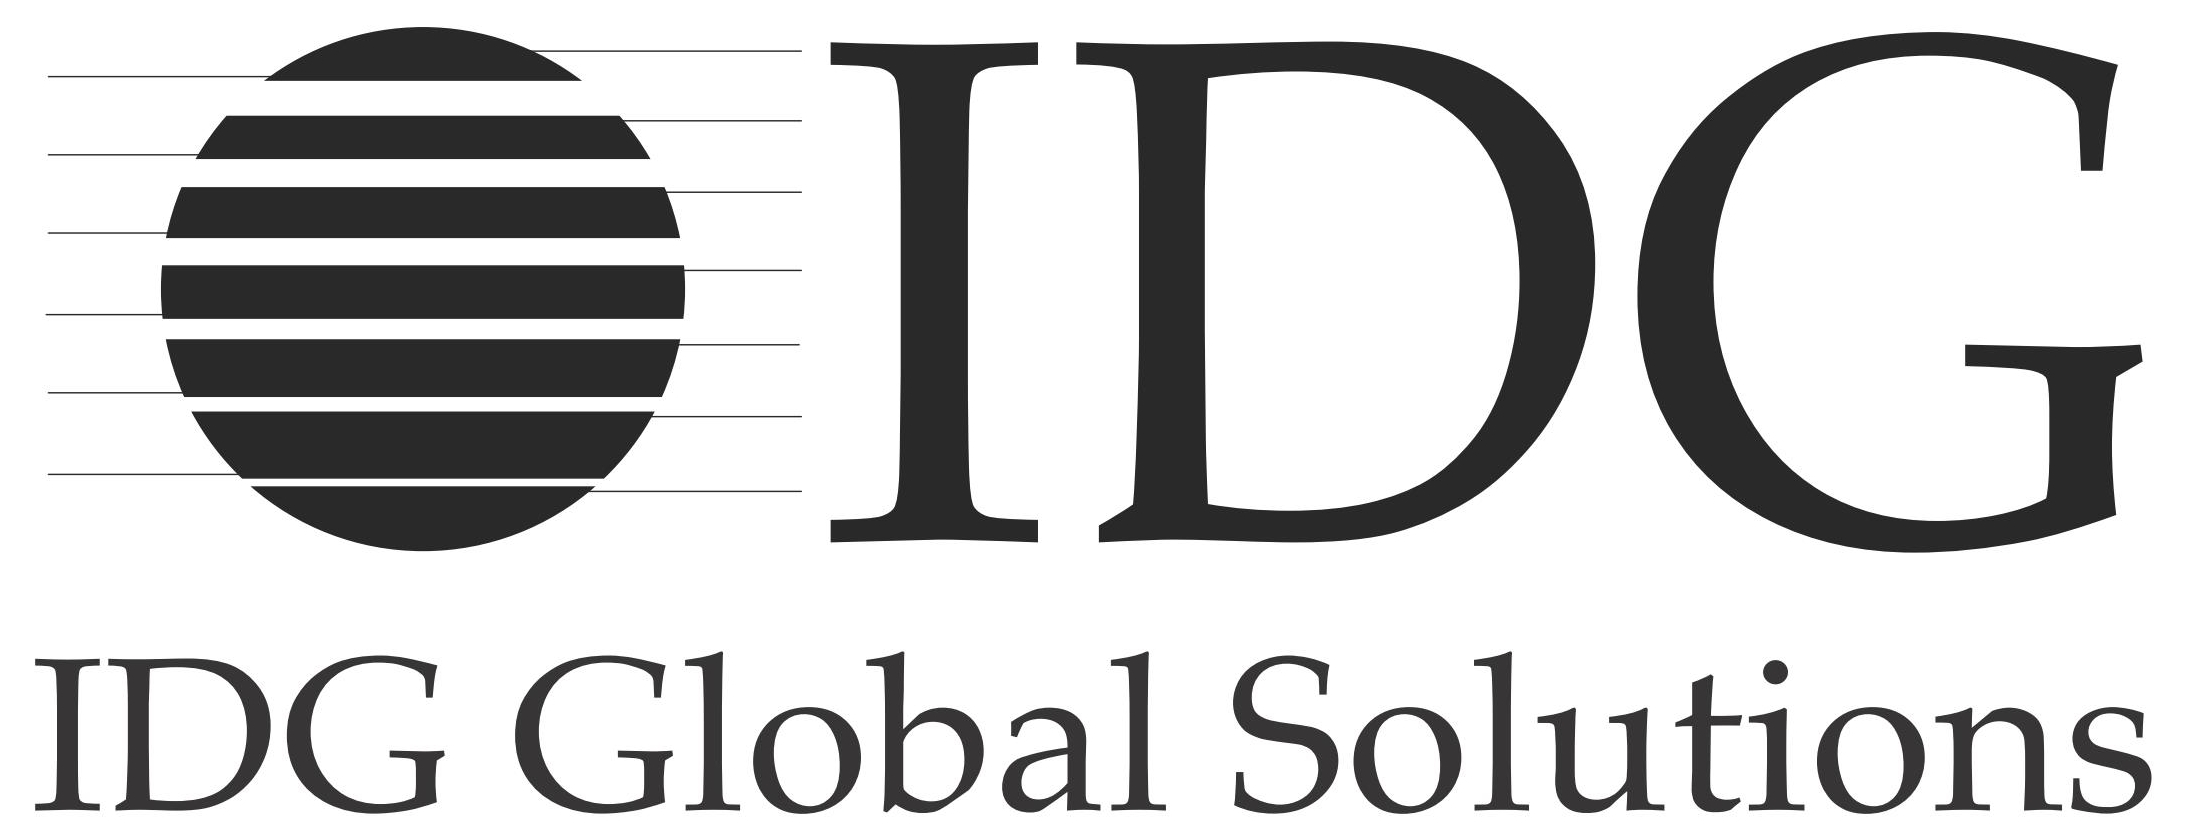 International-Data-Group-IDG-logo - Ar International Logo PNG